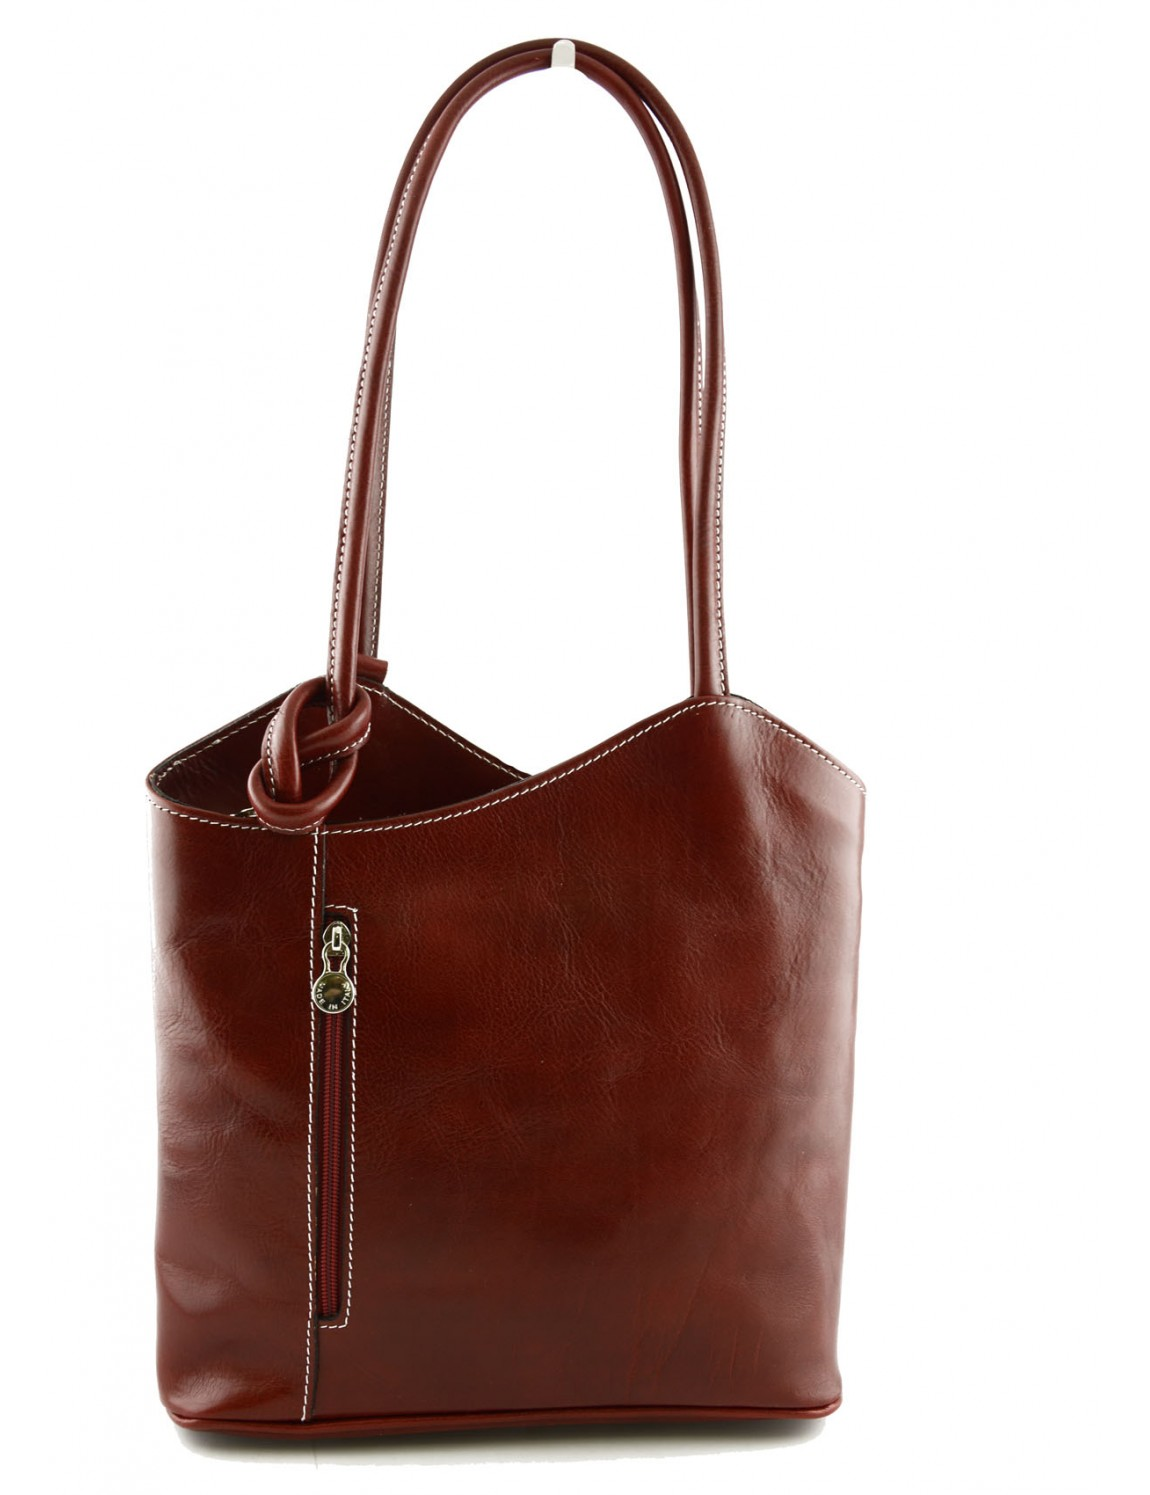 Find great deals on eBay for leather shoulder bags. Shop with confidence.